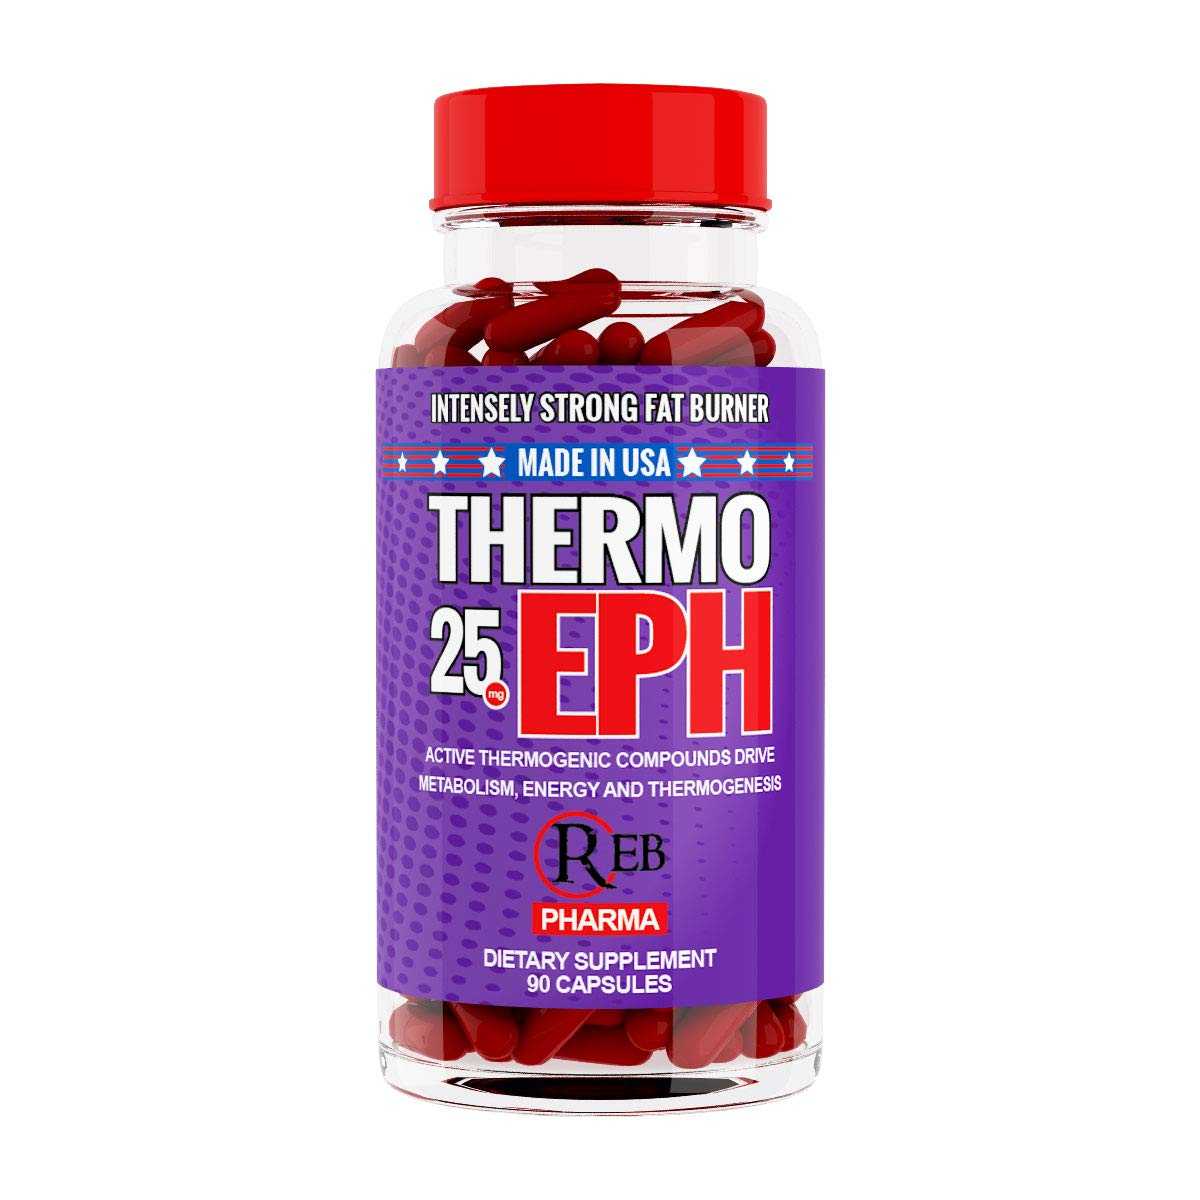 Thermo EPH Thermogenic Fat Burner with Extreme Energy and Appetite Control by REB Pharma